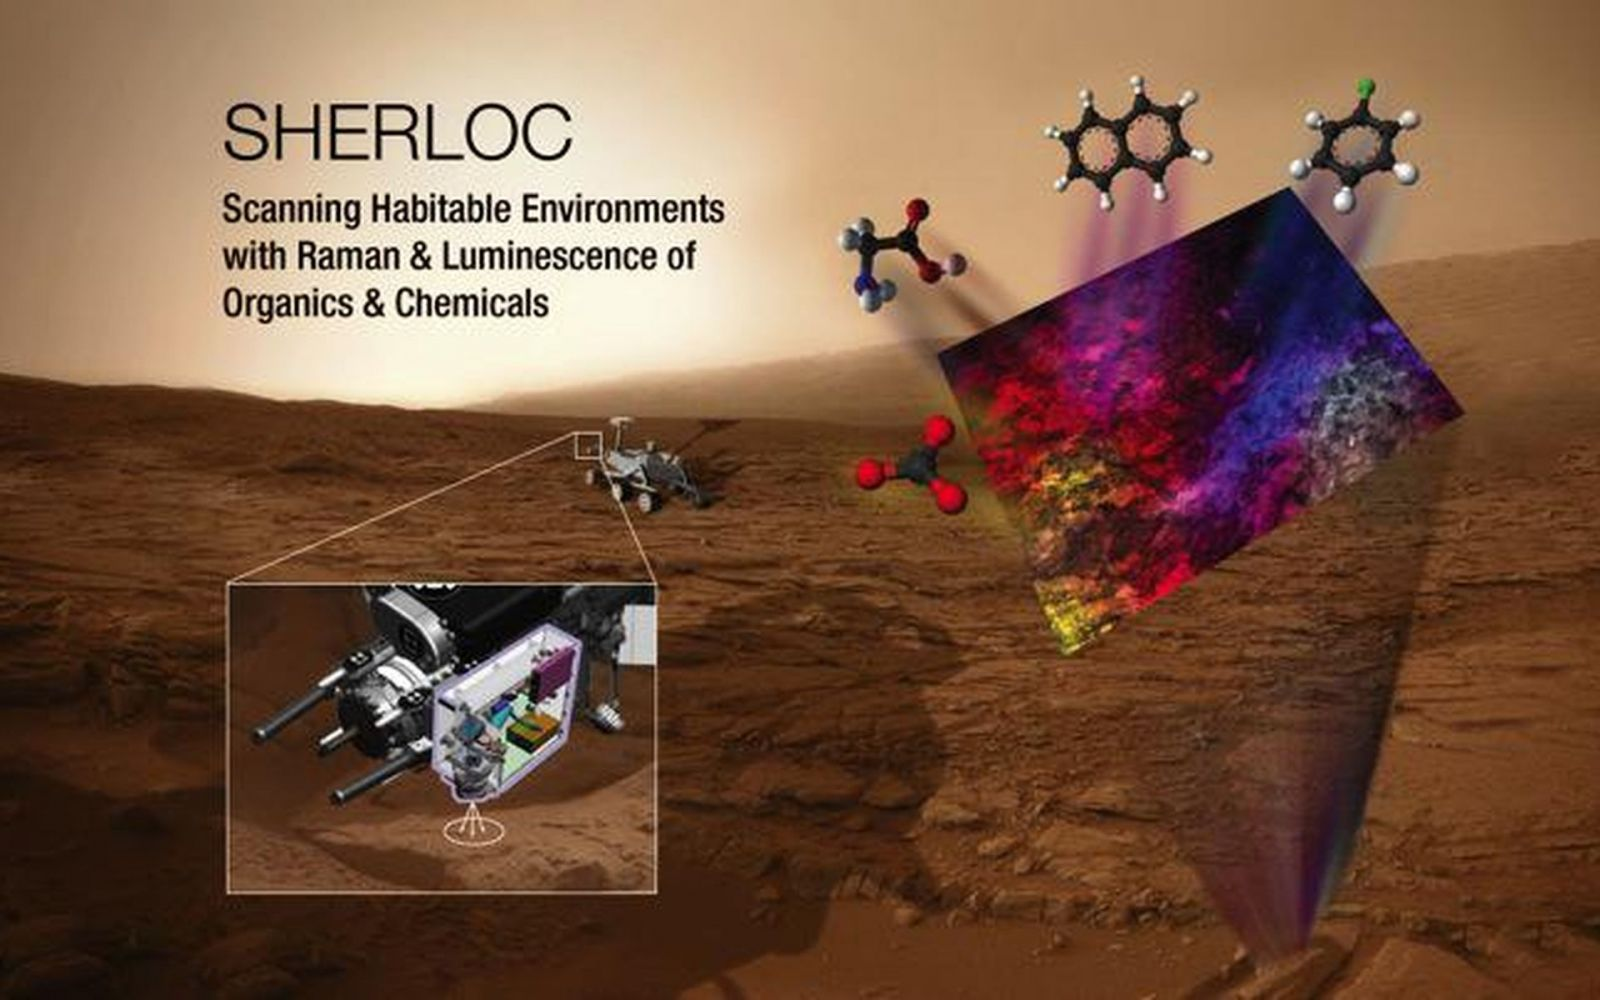 Infographic showing the location of the Scanning Habitable Environments with Raman & Luminescence for Organics and Chemicals (SHERLOC) instrument's location on the Mars 2020 rover. Image Credit: NASA/JPL-Caltech